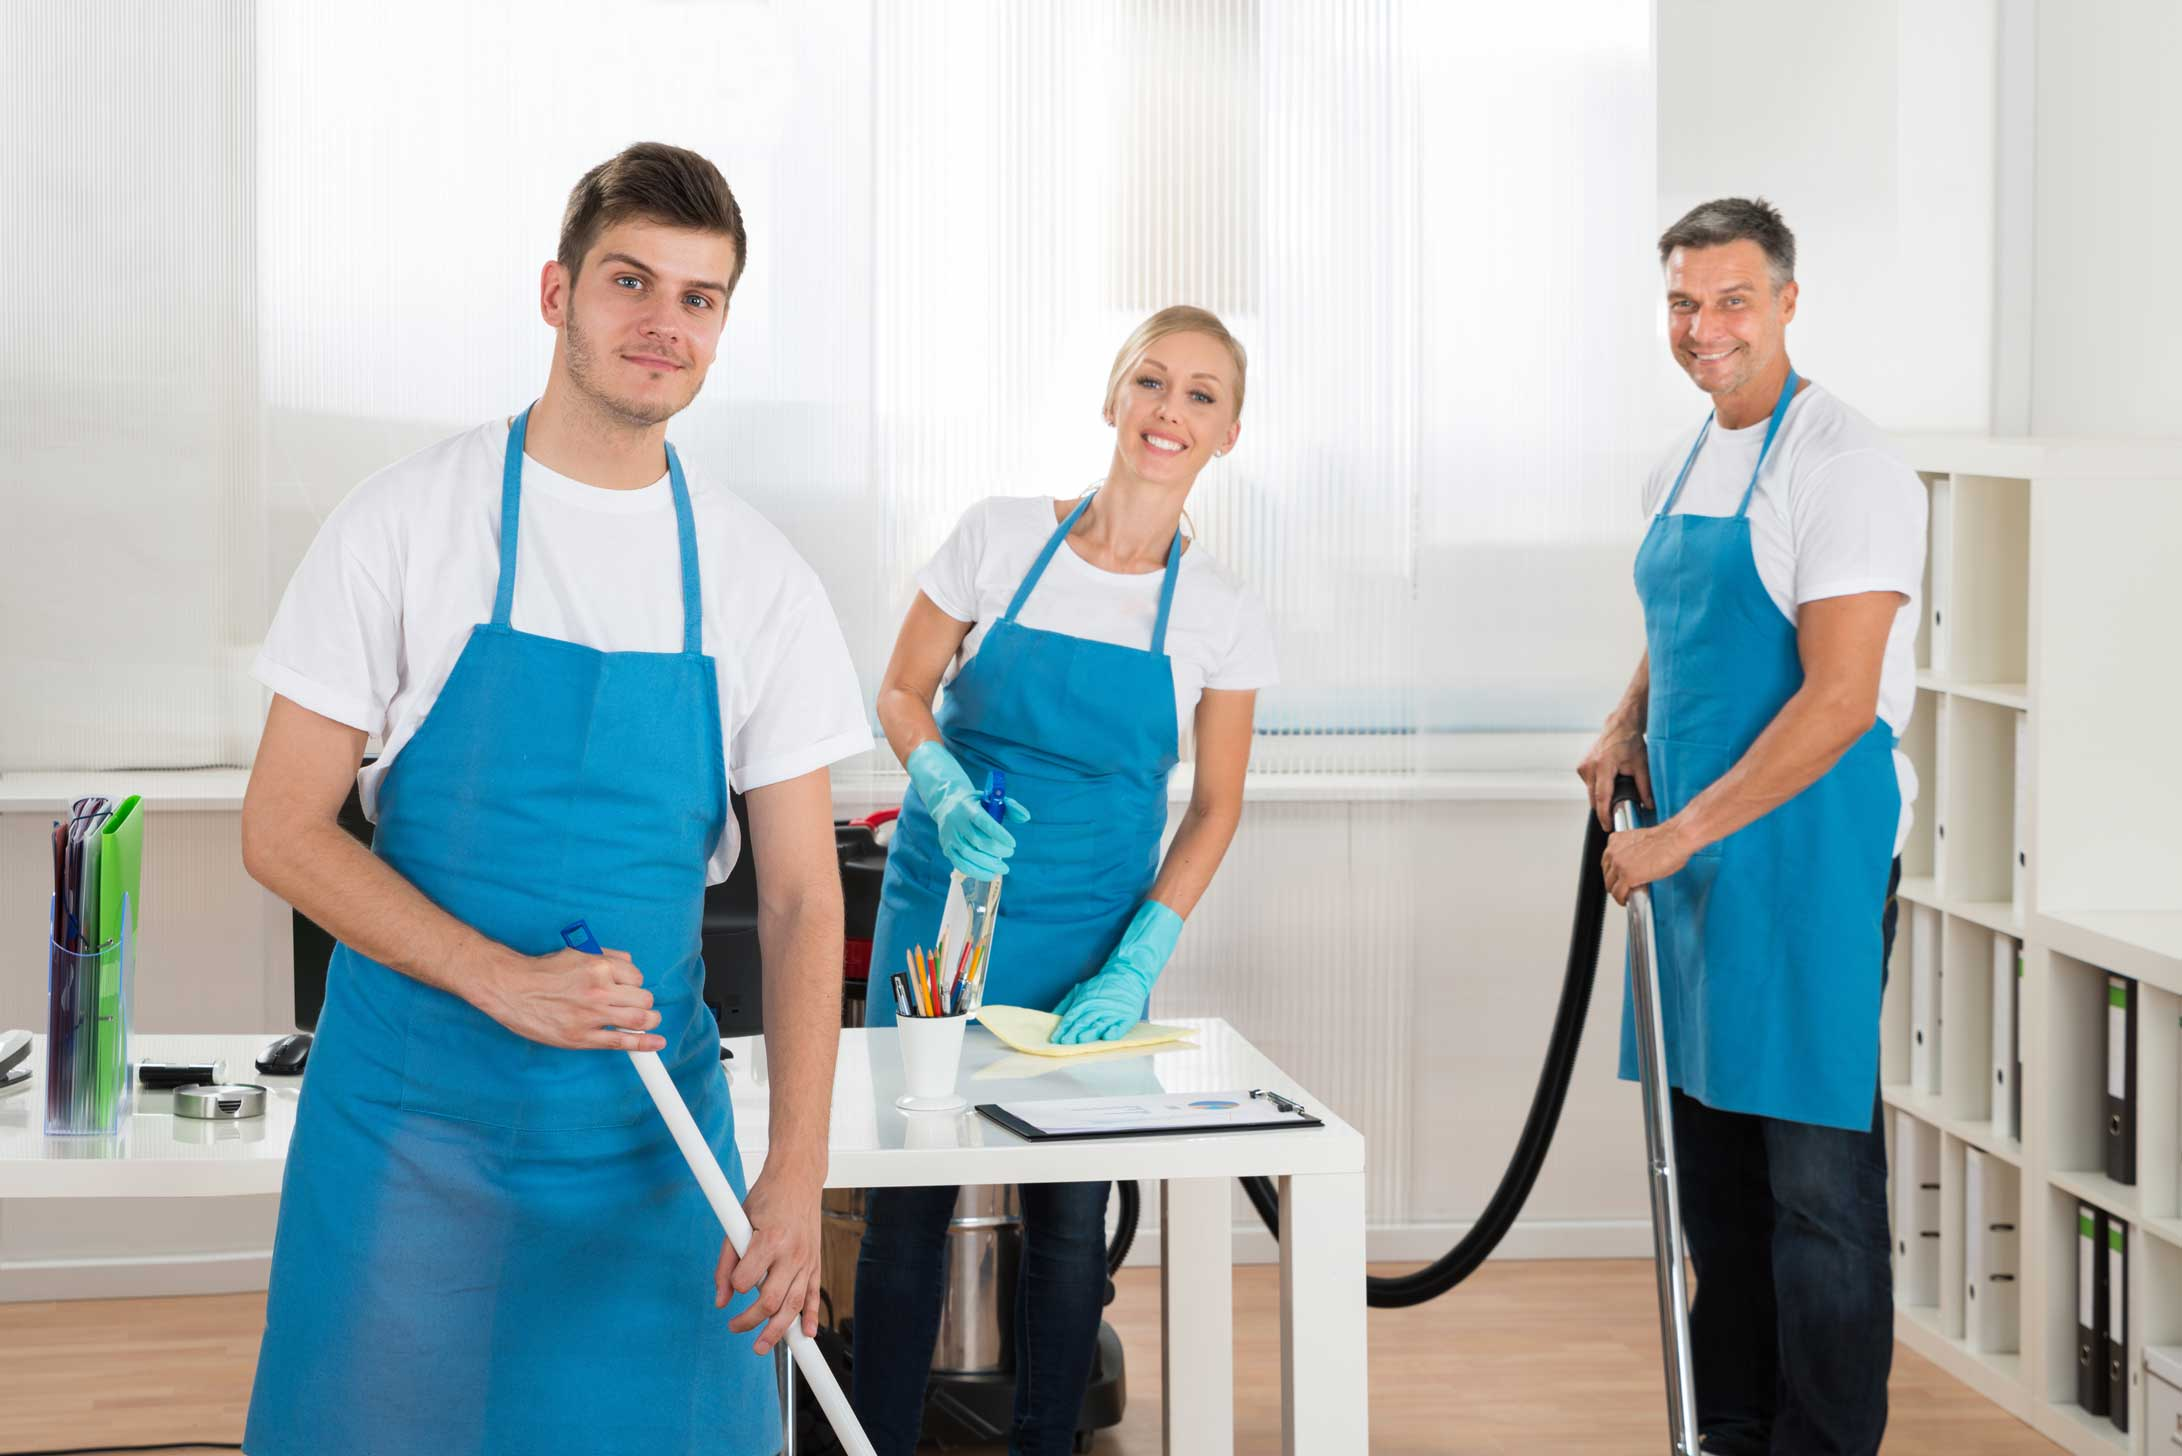 About Express Janitorial